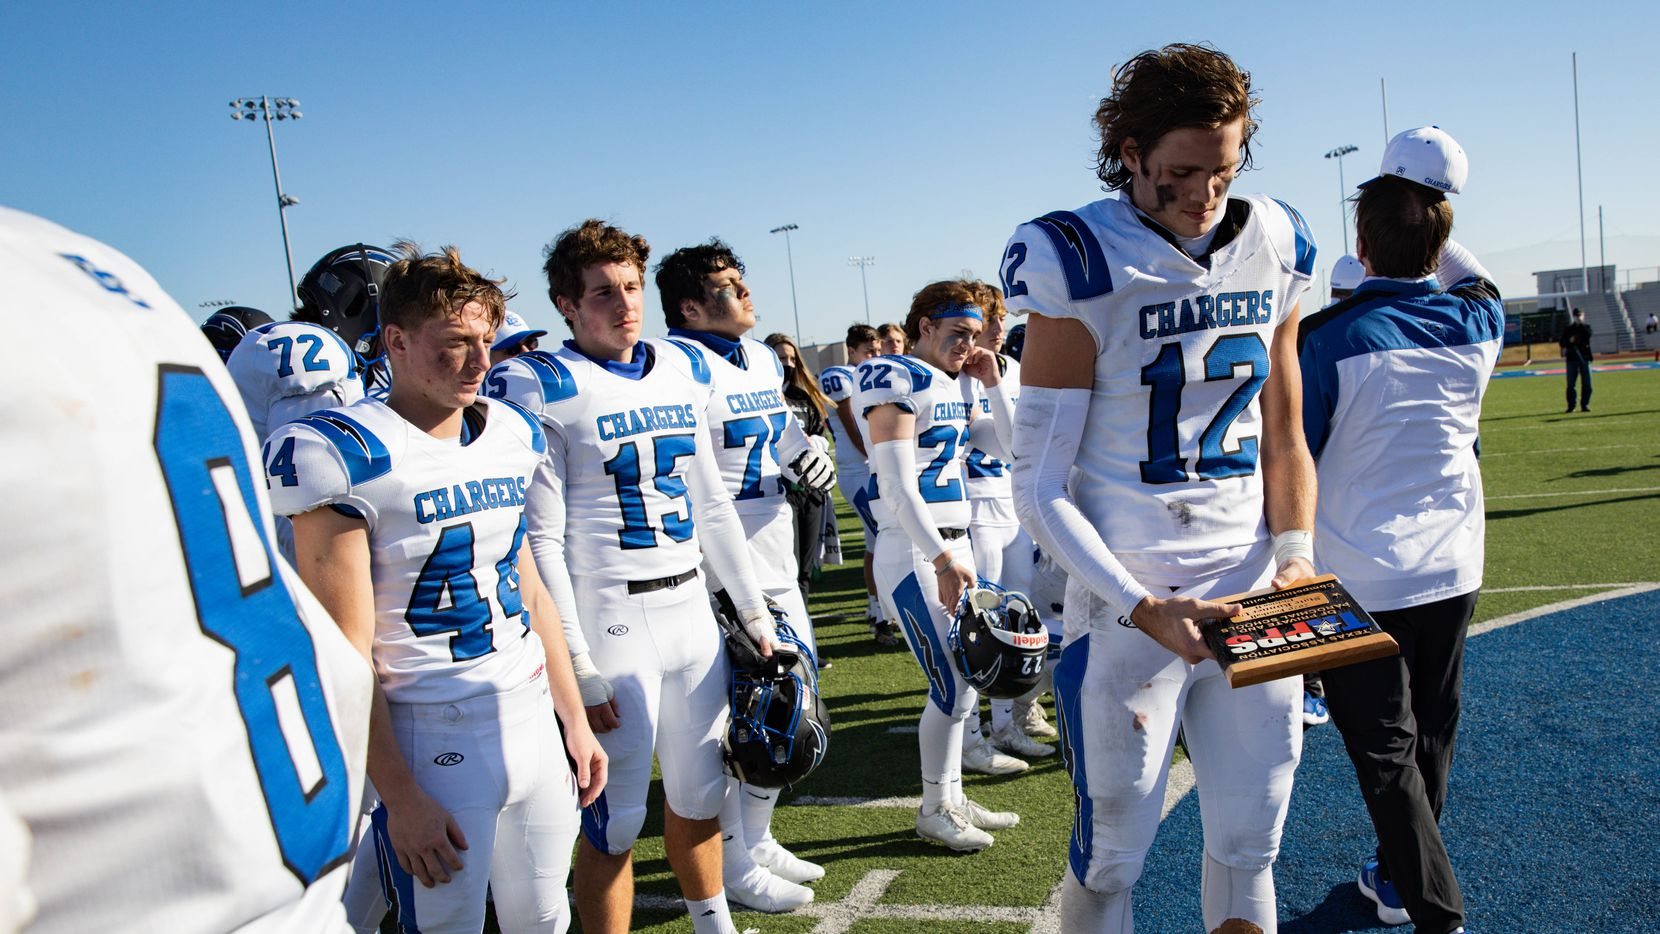 Dallas Christian player Brett Judd (12) holds the runner-up plaque after losing to Austin Regents following a TAPPS Division II state championship game against in Hewitt on Saturday, Dec. 19, 2020. Austin won with a touchdown in the final second, 26-20.